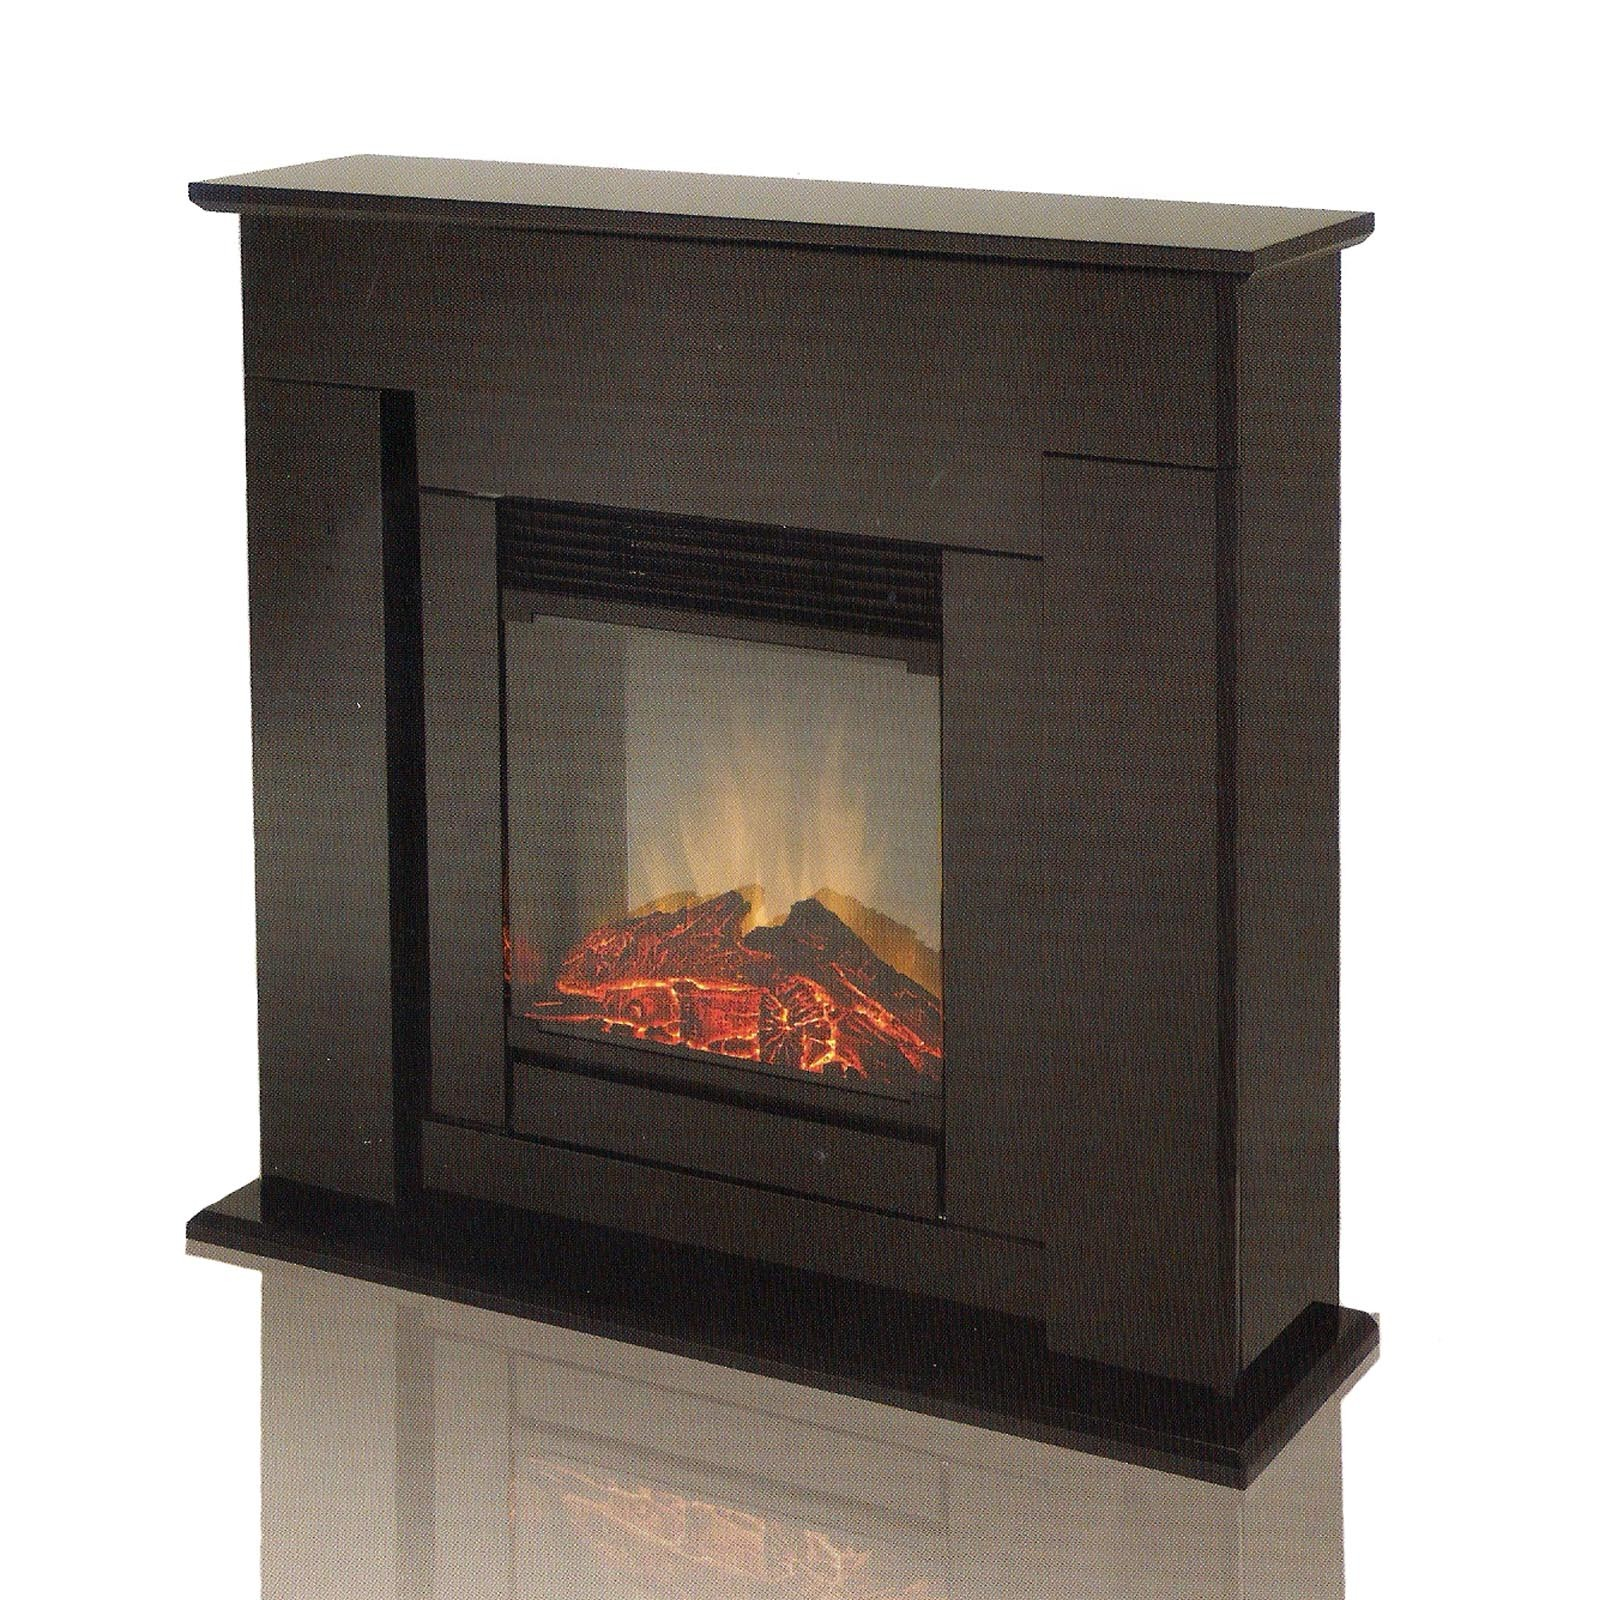 Brand New Dimplex Covelo Optiflame Electric Fireplace Suite Quick Free Delivery